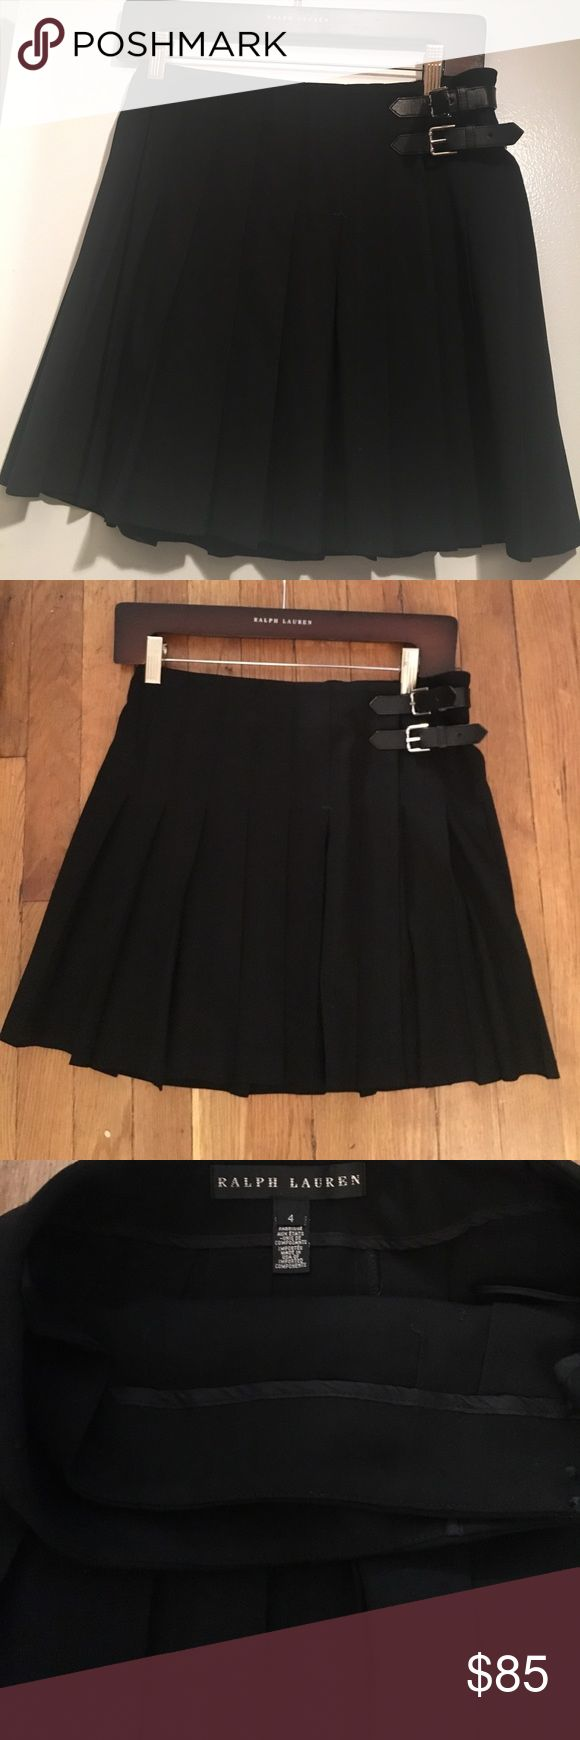 Ralph Lauren Black Label Pleated Skirt Sz4 Ralph Lauren Black Label Pleated Skirt! Perfect for fall with chunky sweaters and tights! Leather side tabs and button closure inside. Hardly worn. Size 4! Ralph Lauren Skirts Mini